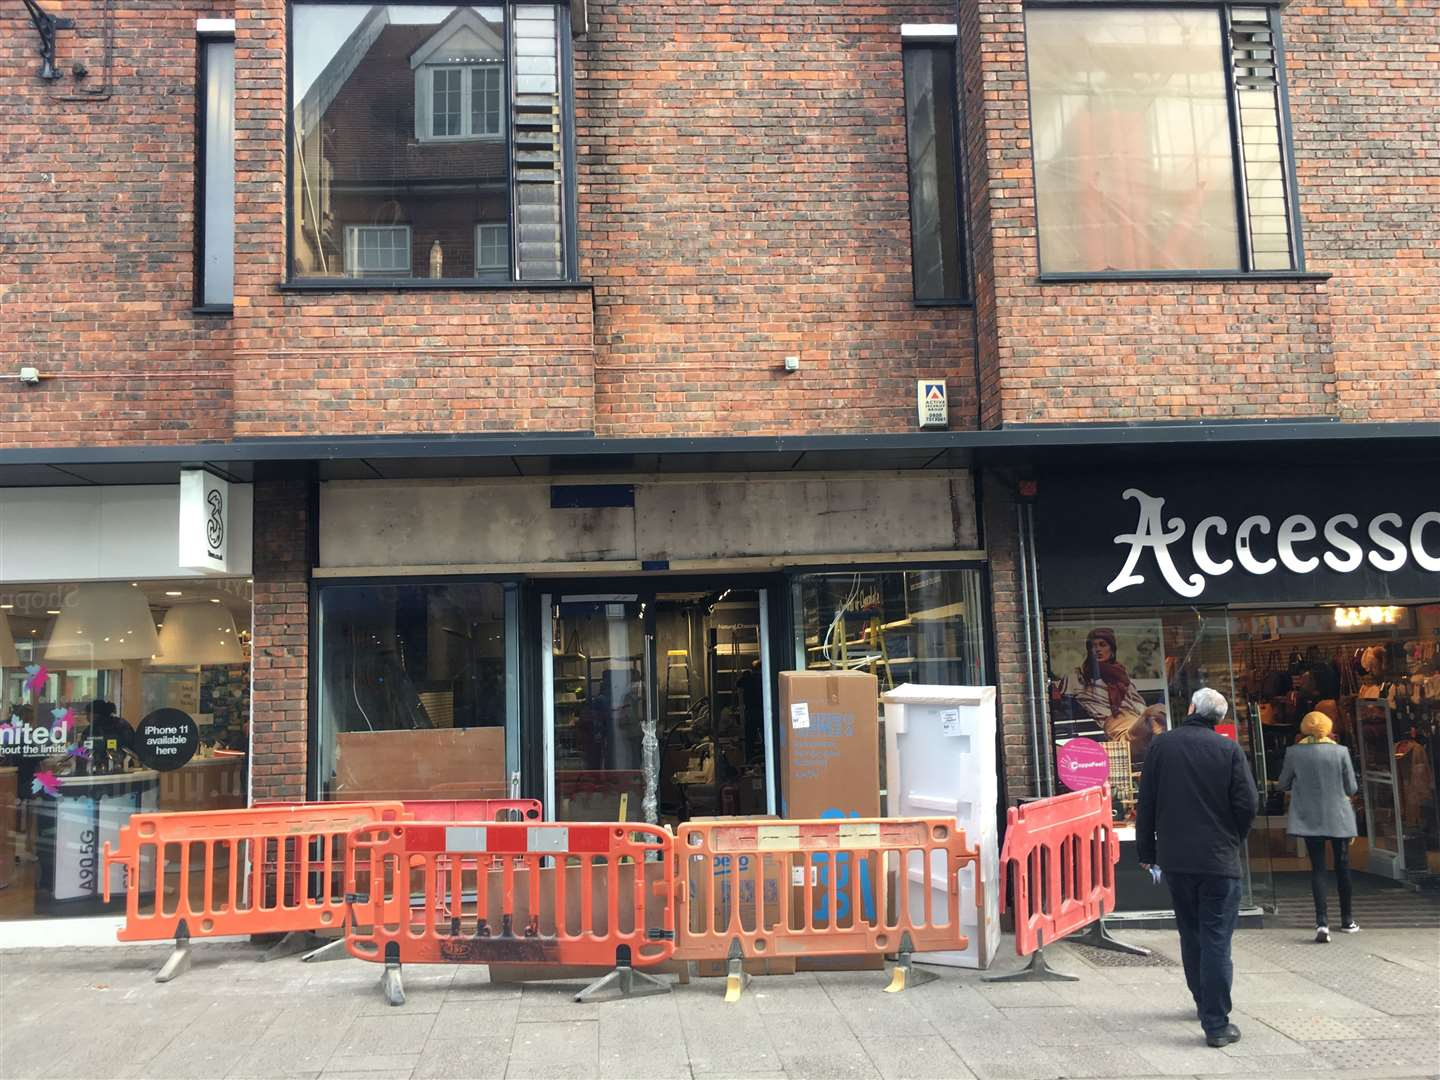 Work is underway to get Hotel Chocolat ready for its November 2019 opening in Bishop's Stortford